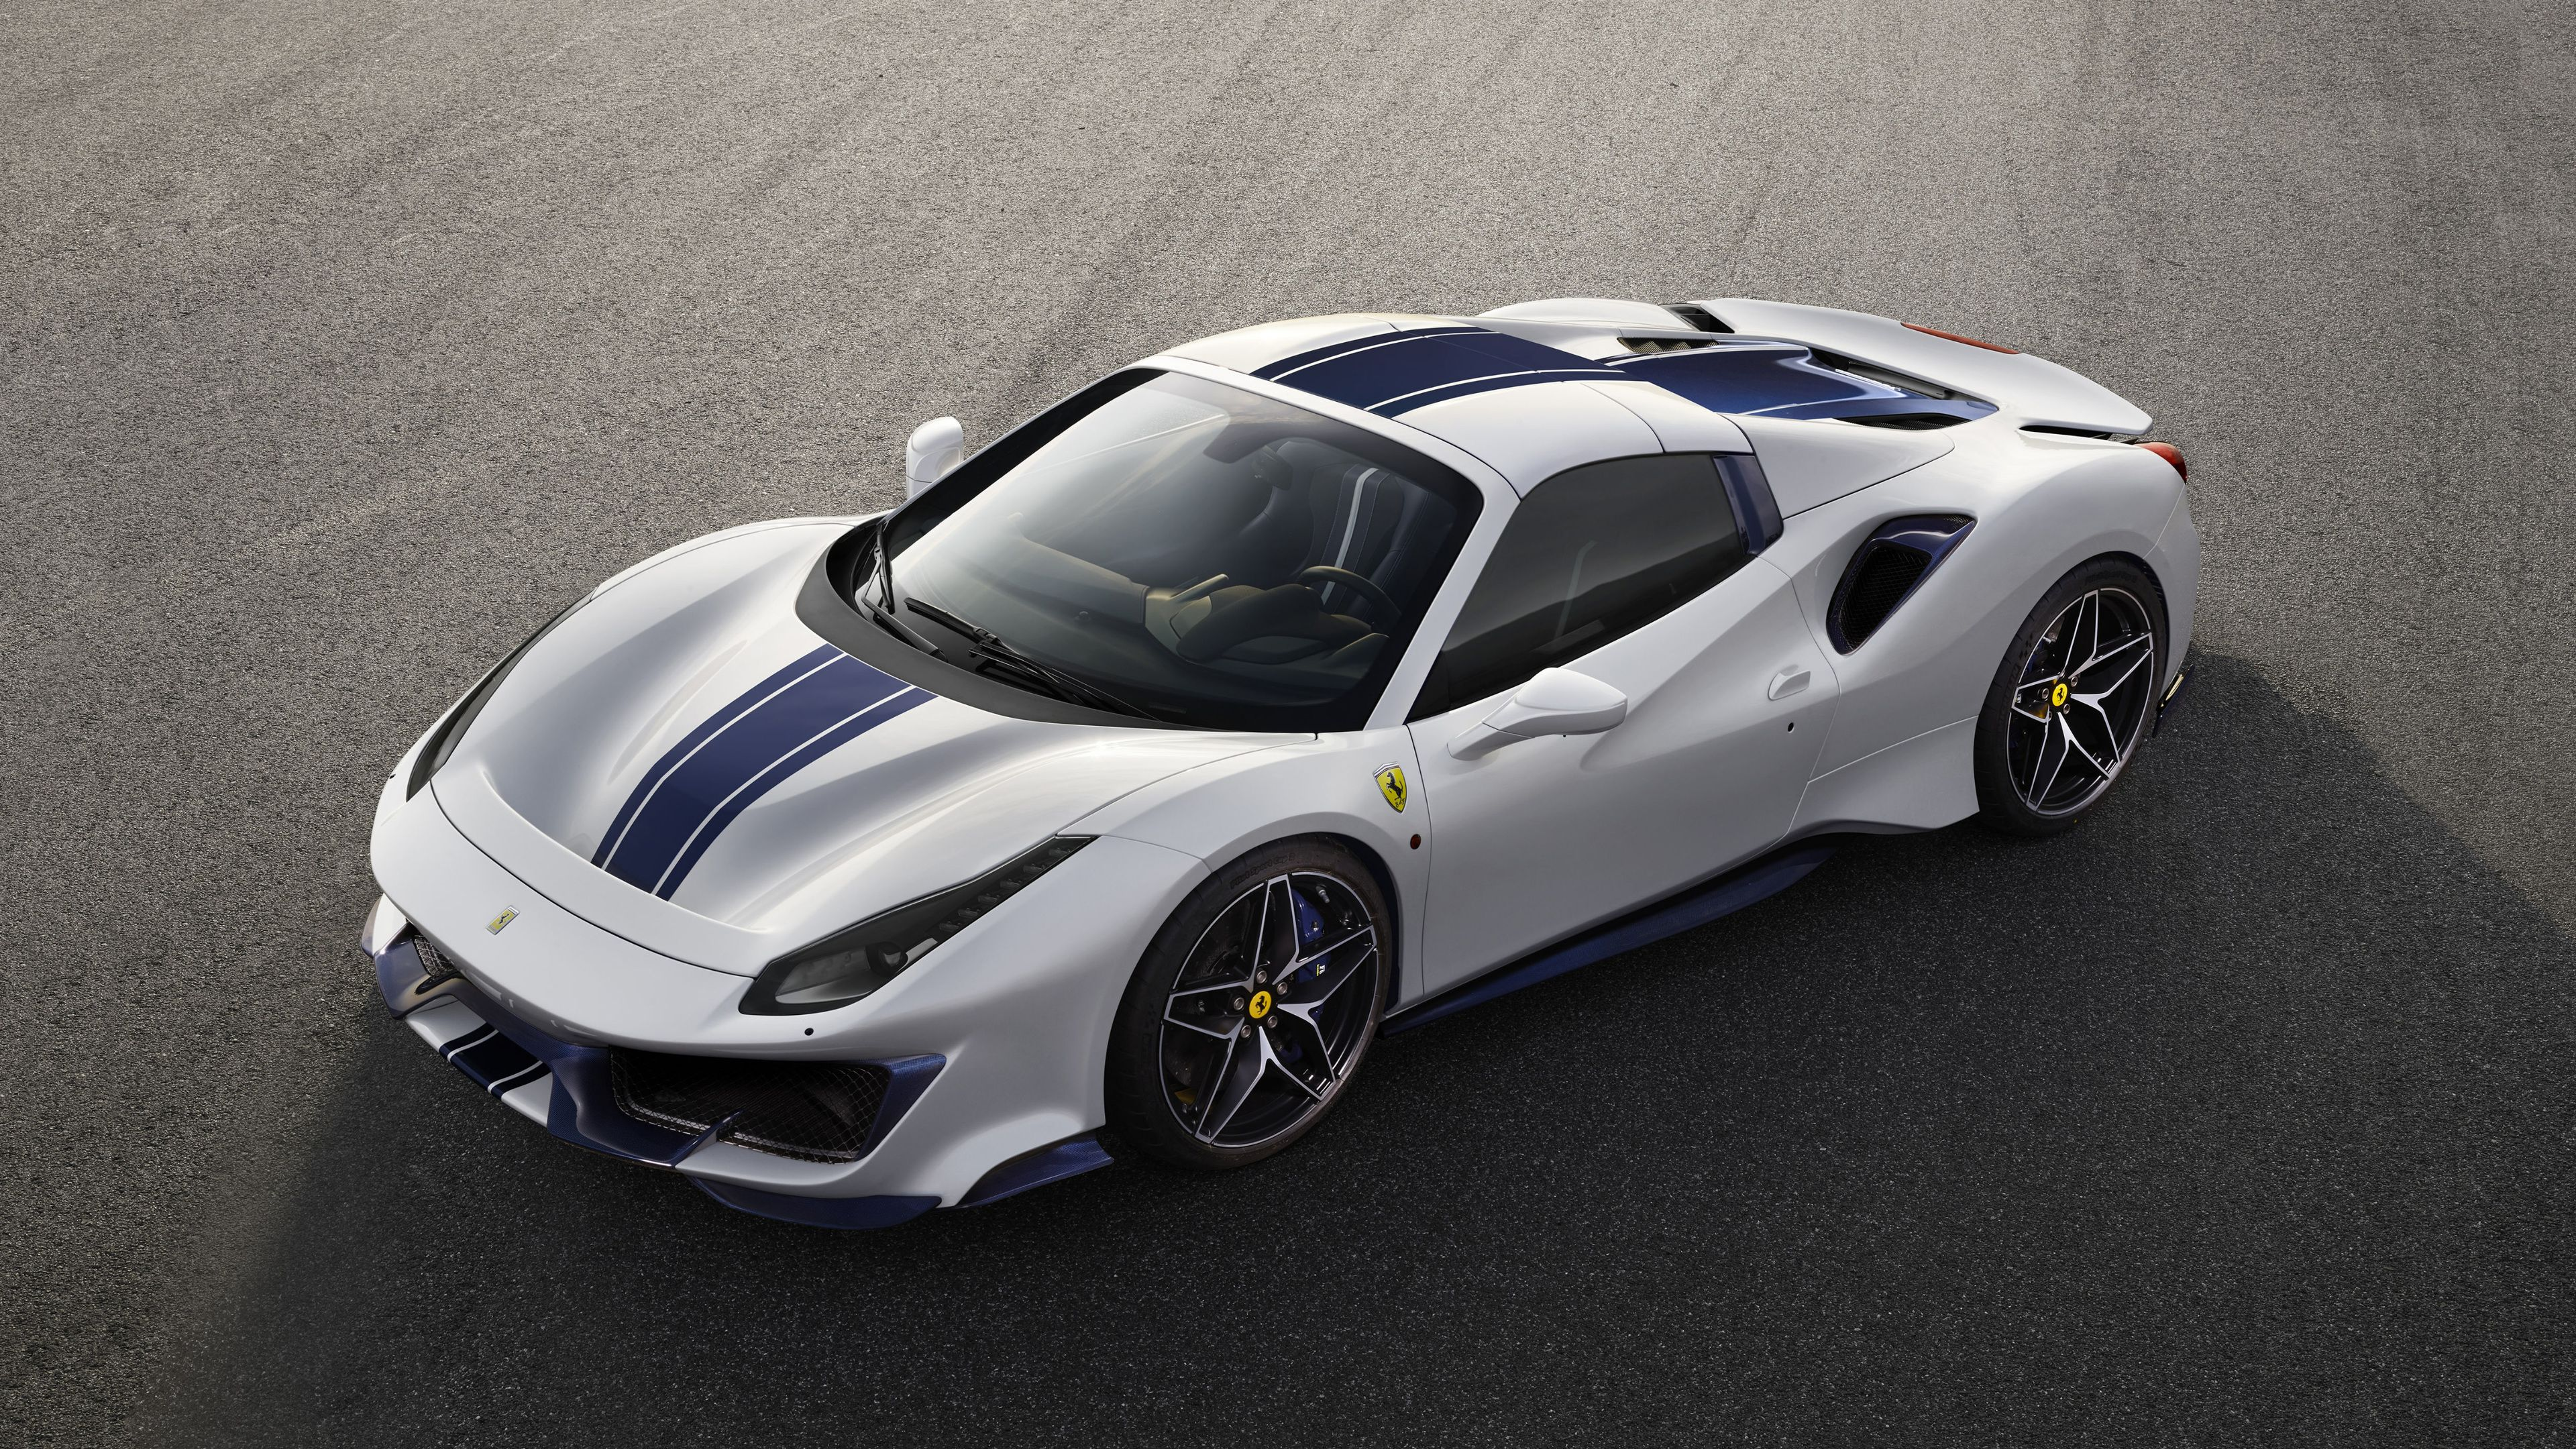 Wallpaper 4k Ferrari 488 Pista Spider 2018 2018 Cars Wallpapers